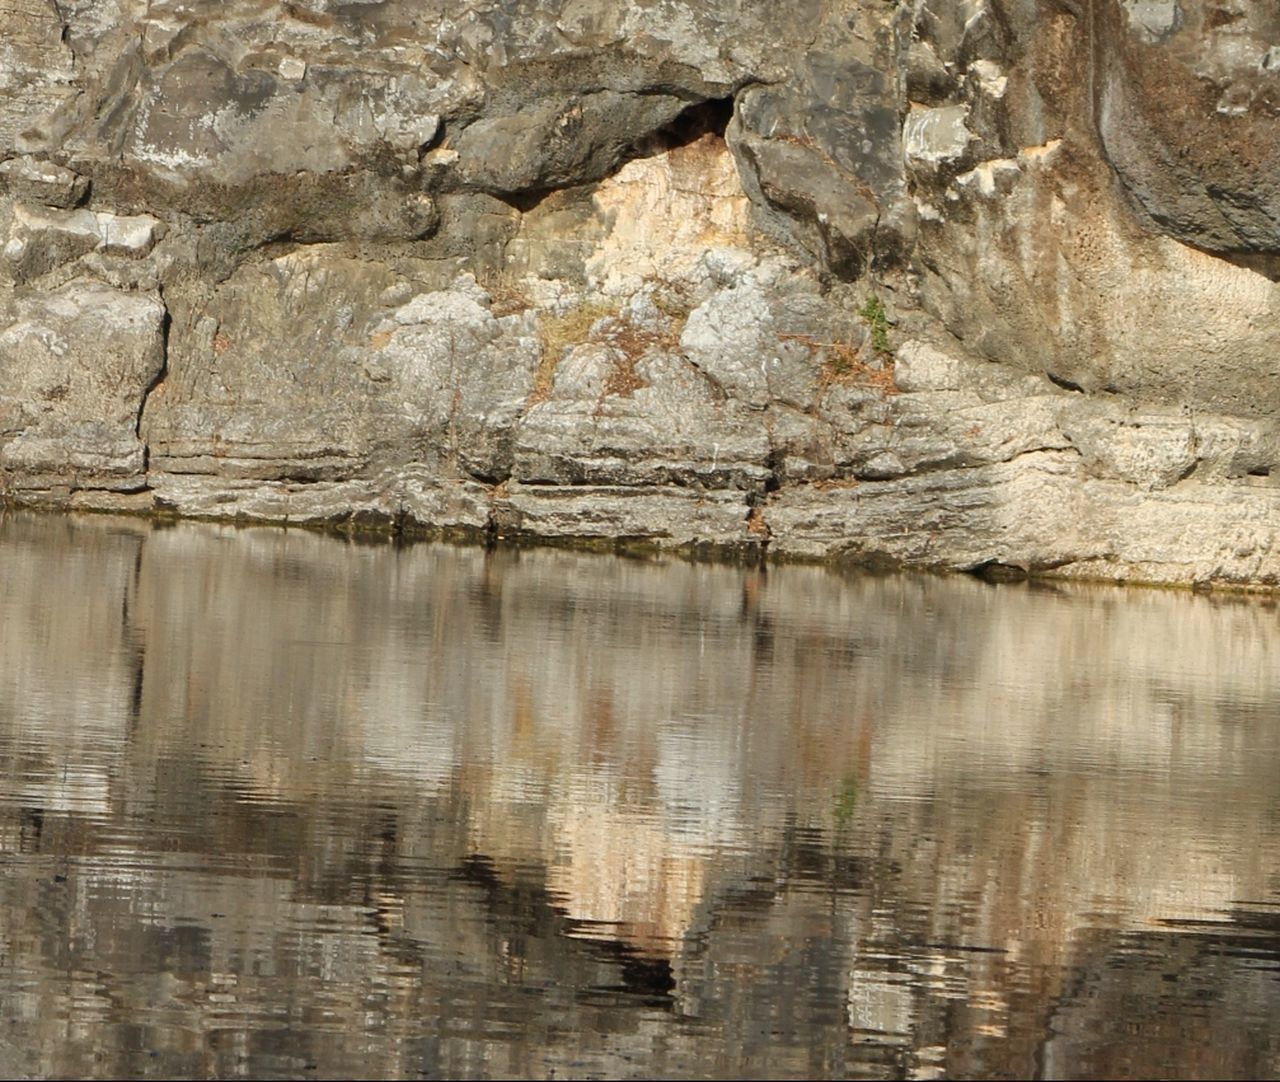 rock - object, textured, reflection, full frame, backgrounds, no people, nature, day, outdoors, close-up